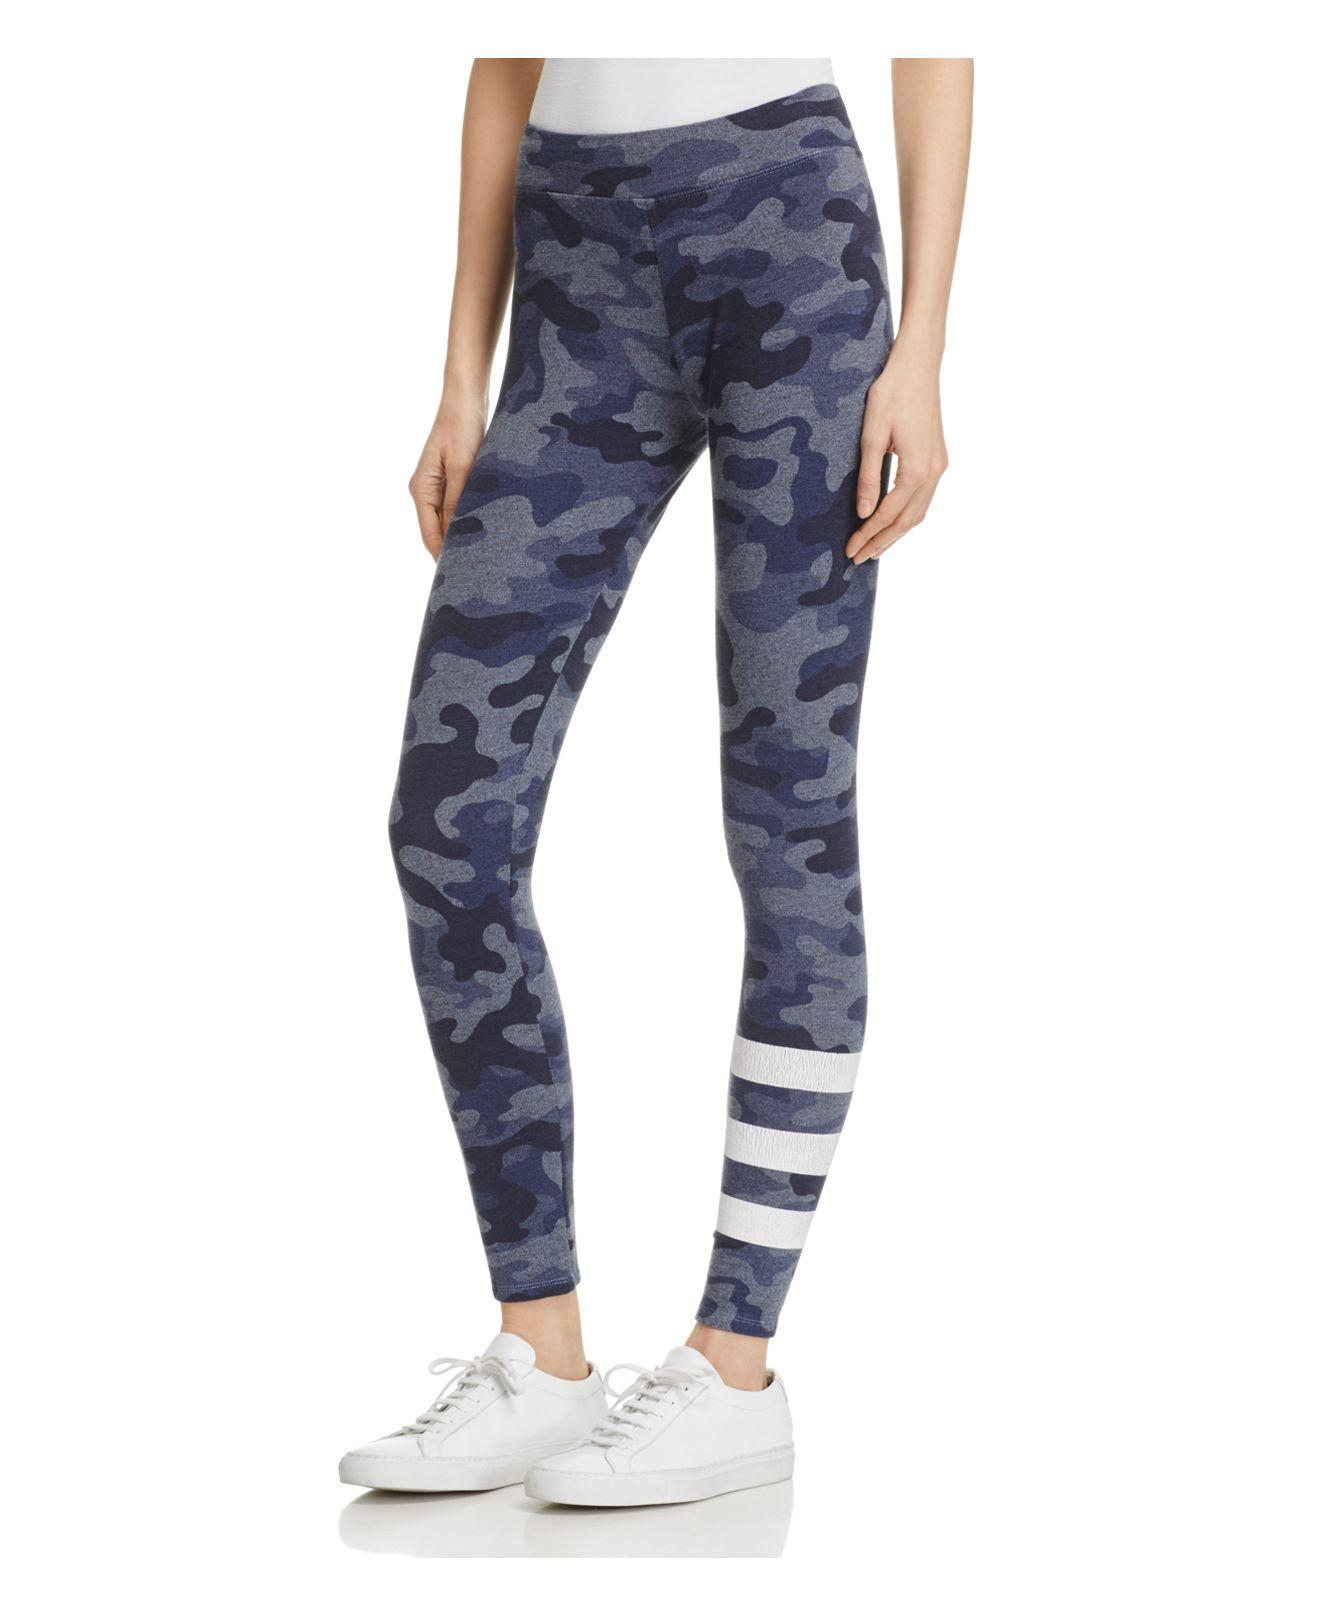 Model  Pants Adidas Sports Pants And Ellen Pants There Are 12 Camouflage